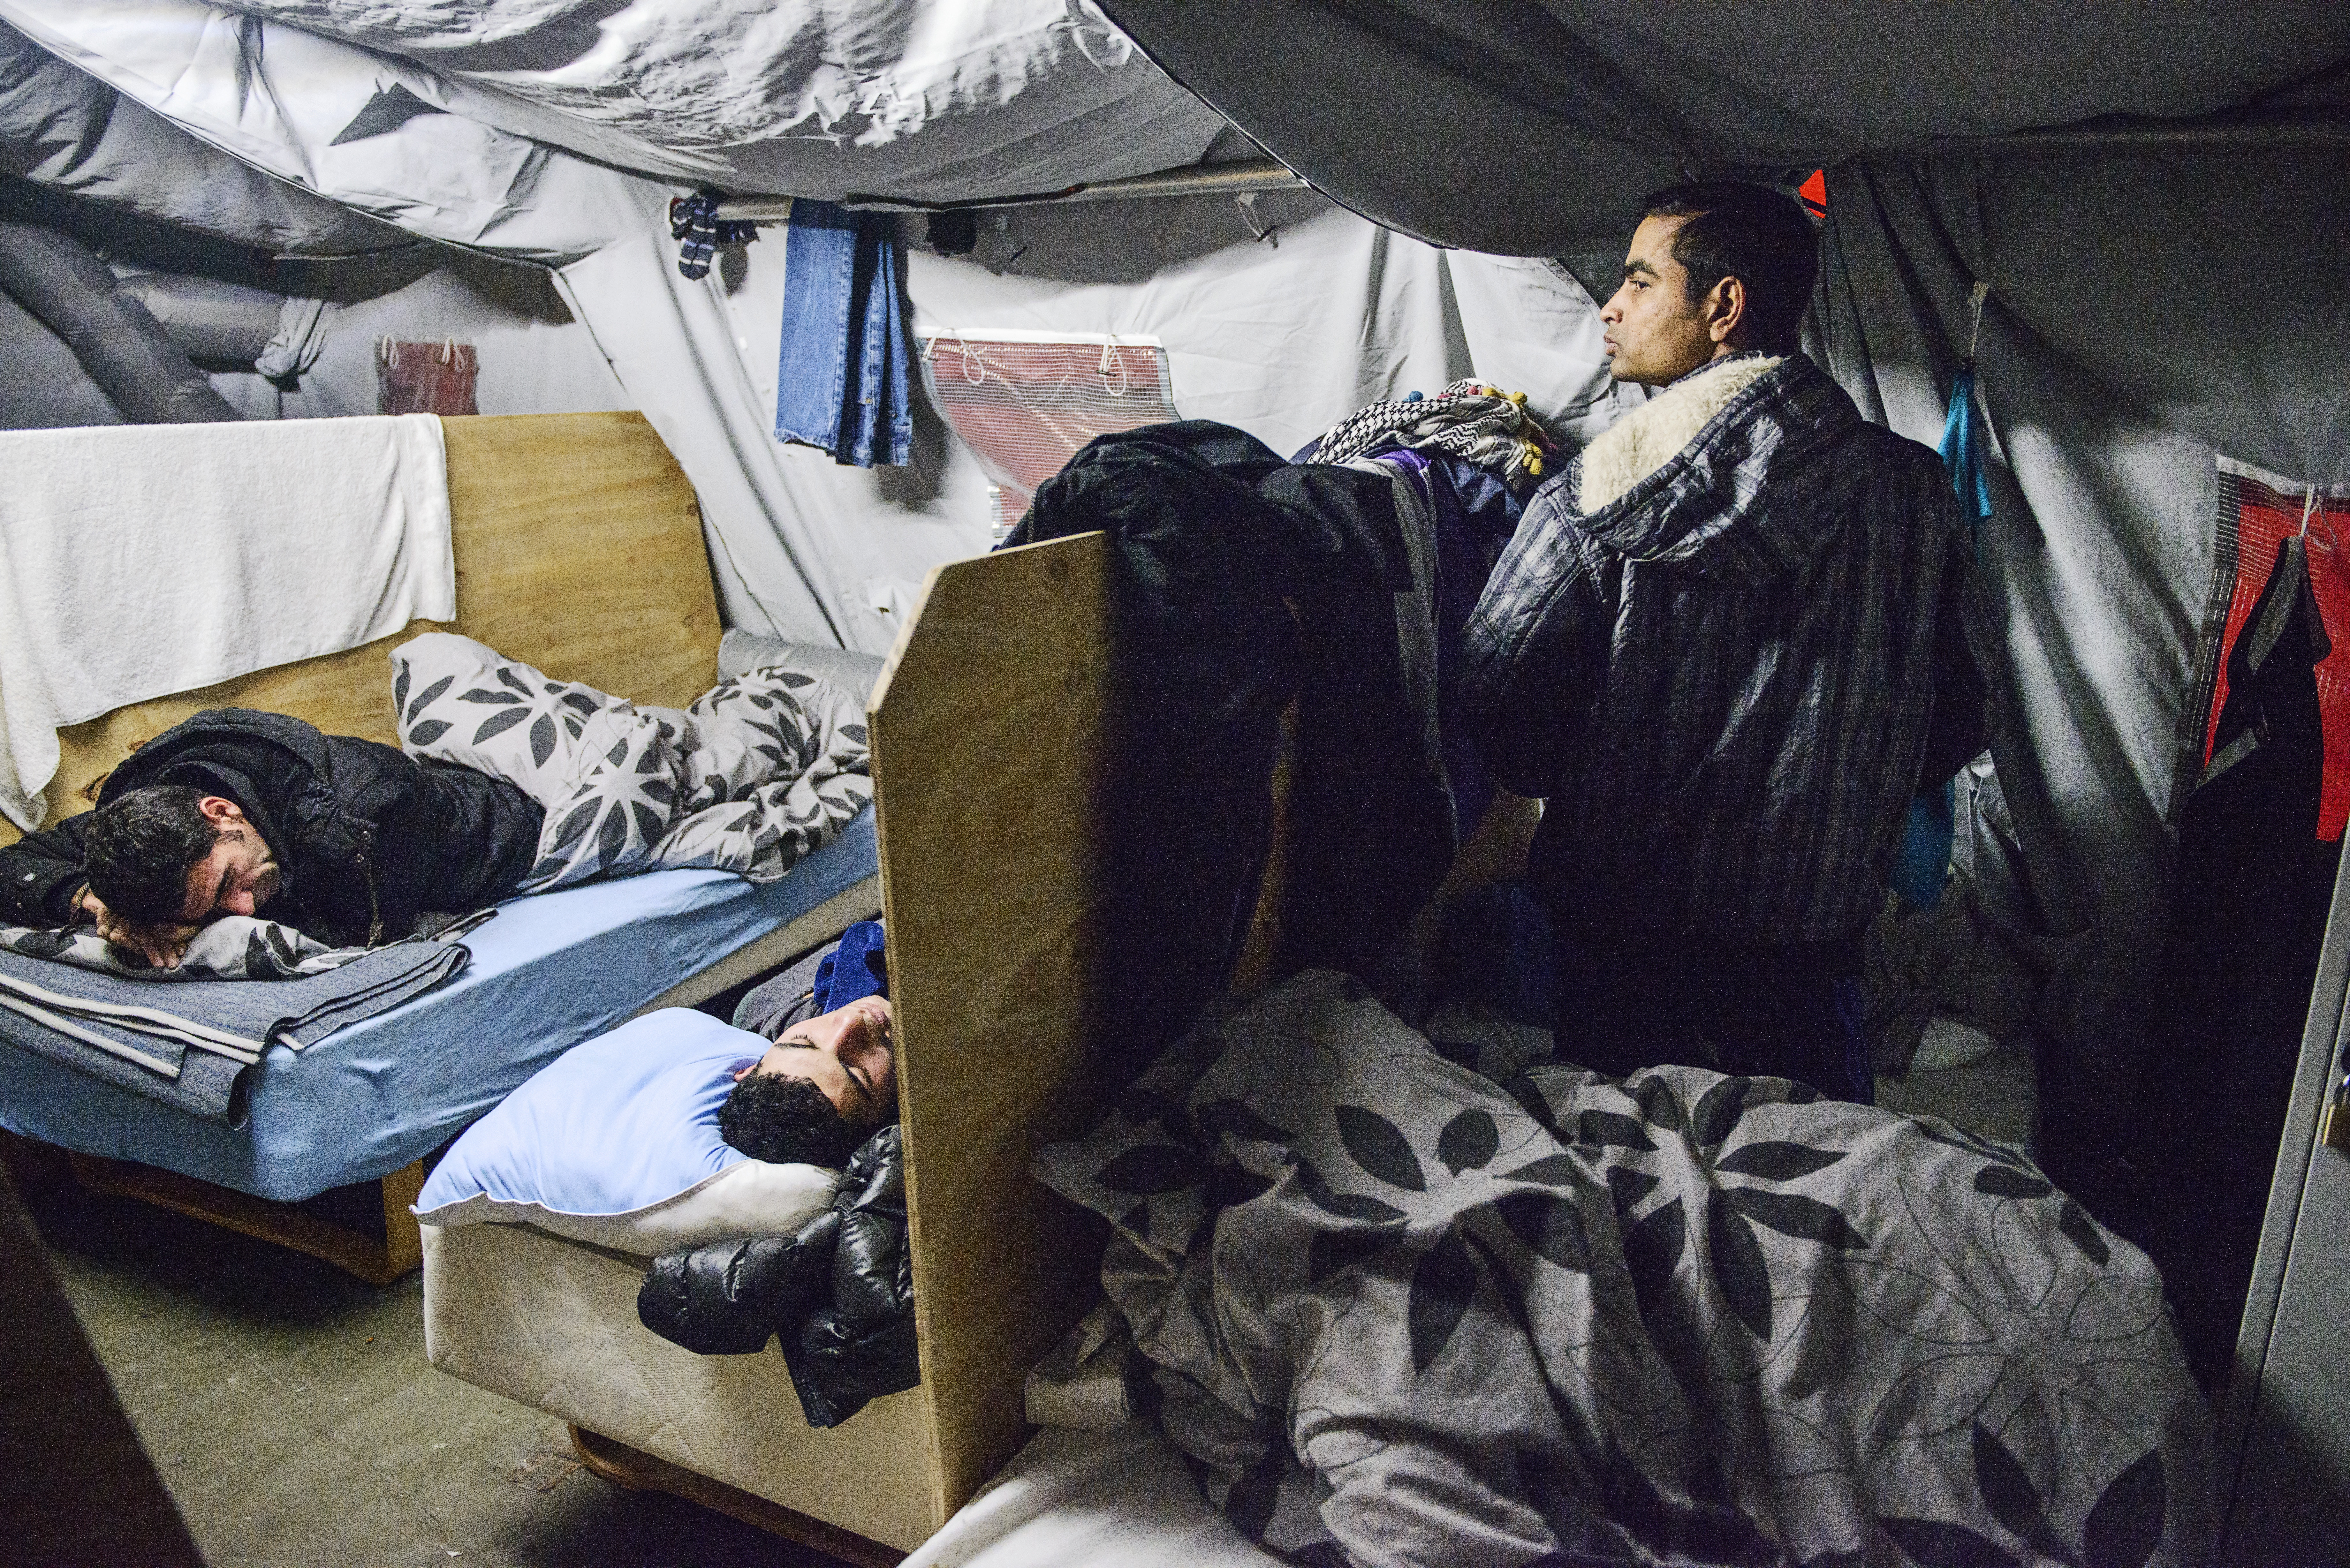 A file photo dated 13 January 2016 showing refugees in their beds at the refugee tent c& in Thisted northern Jutland Denmark. & More refugees find jobs in Denmark